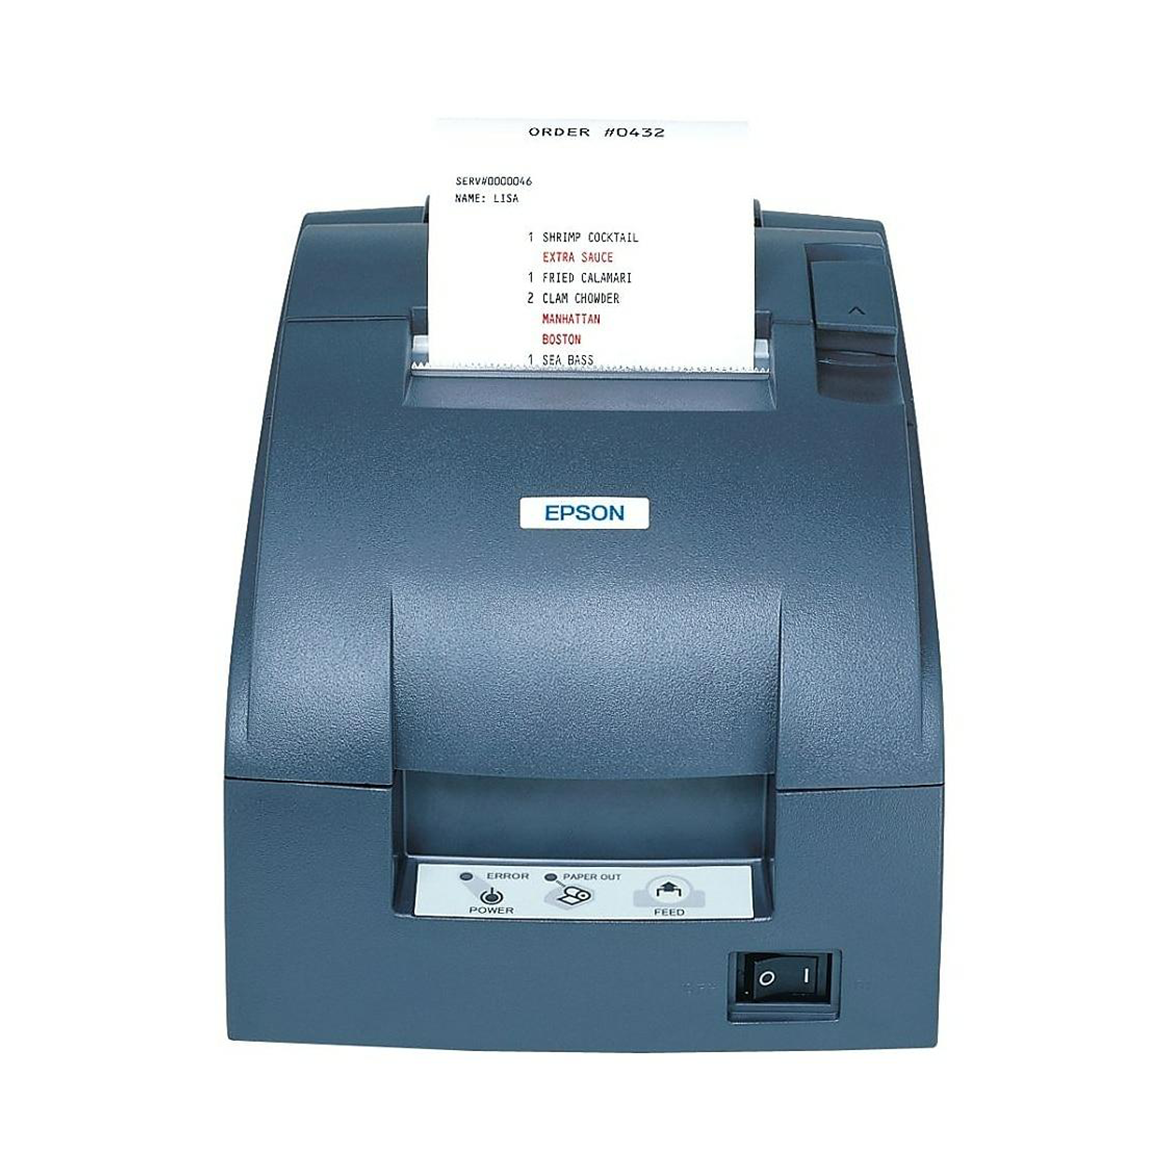 Epson TM-U220 Receipt & Kitchen Printer